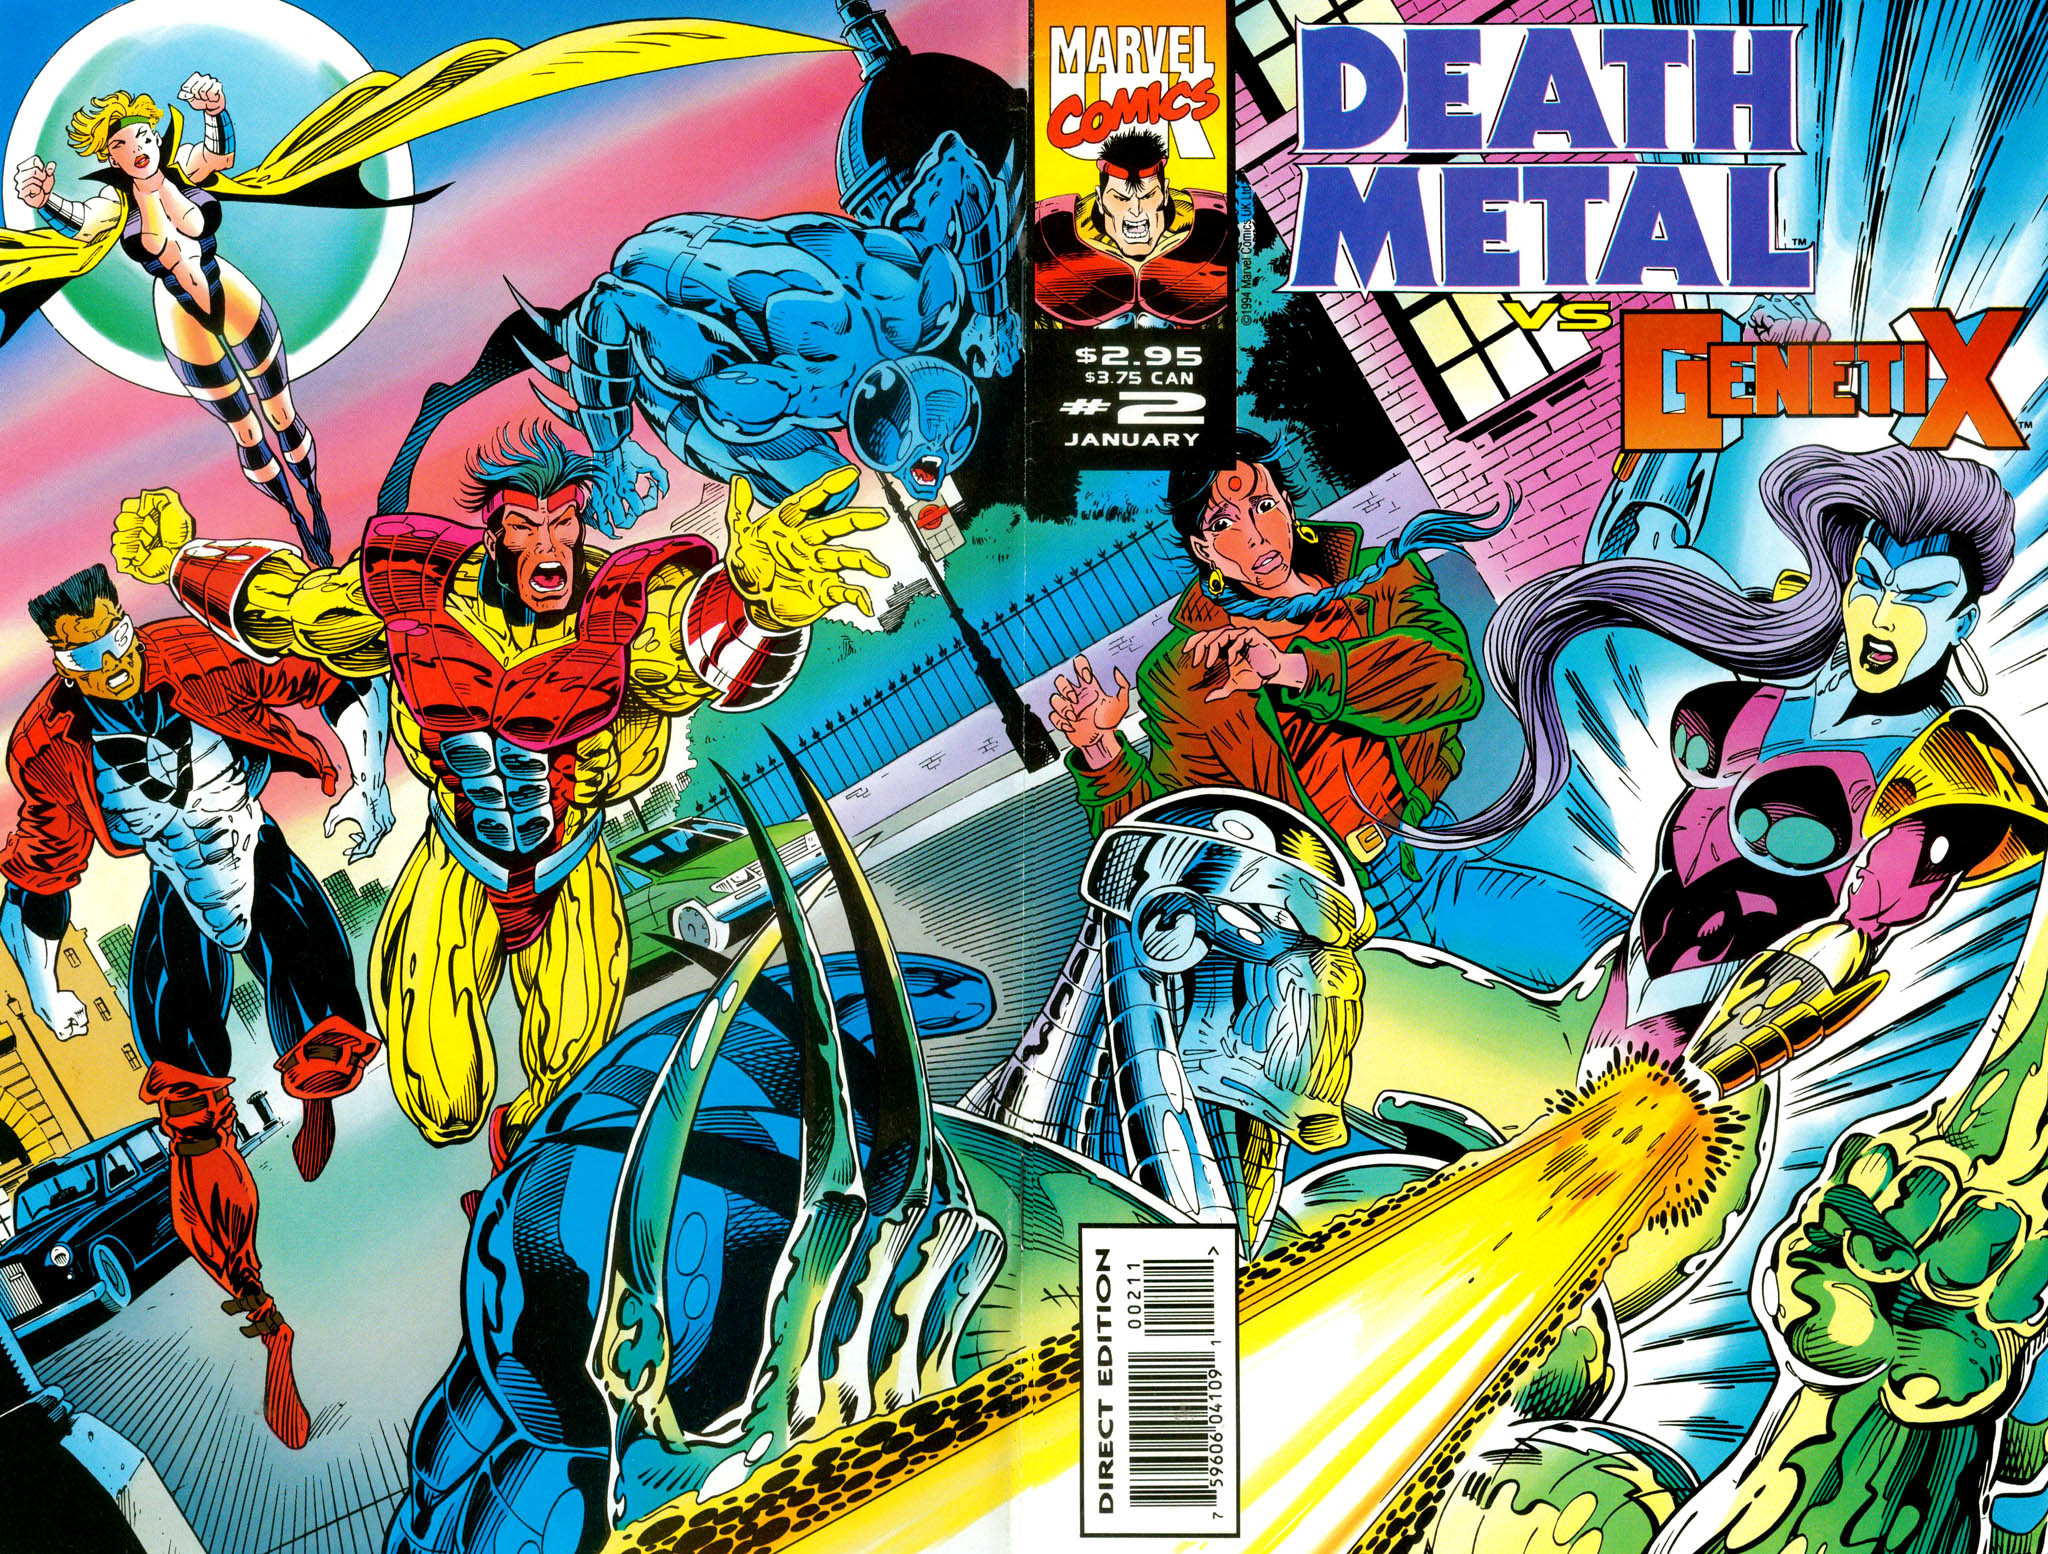 Read online Death Metal vs. Genetix comic -  Issue #2 - 1